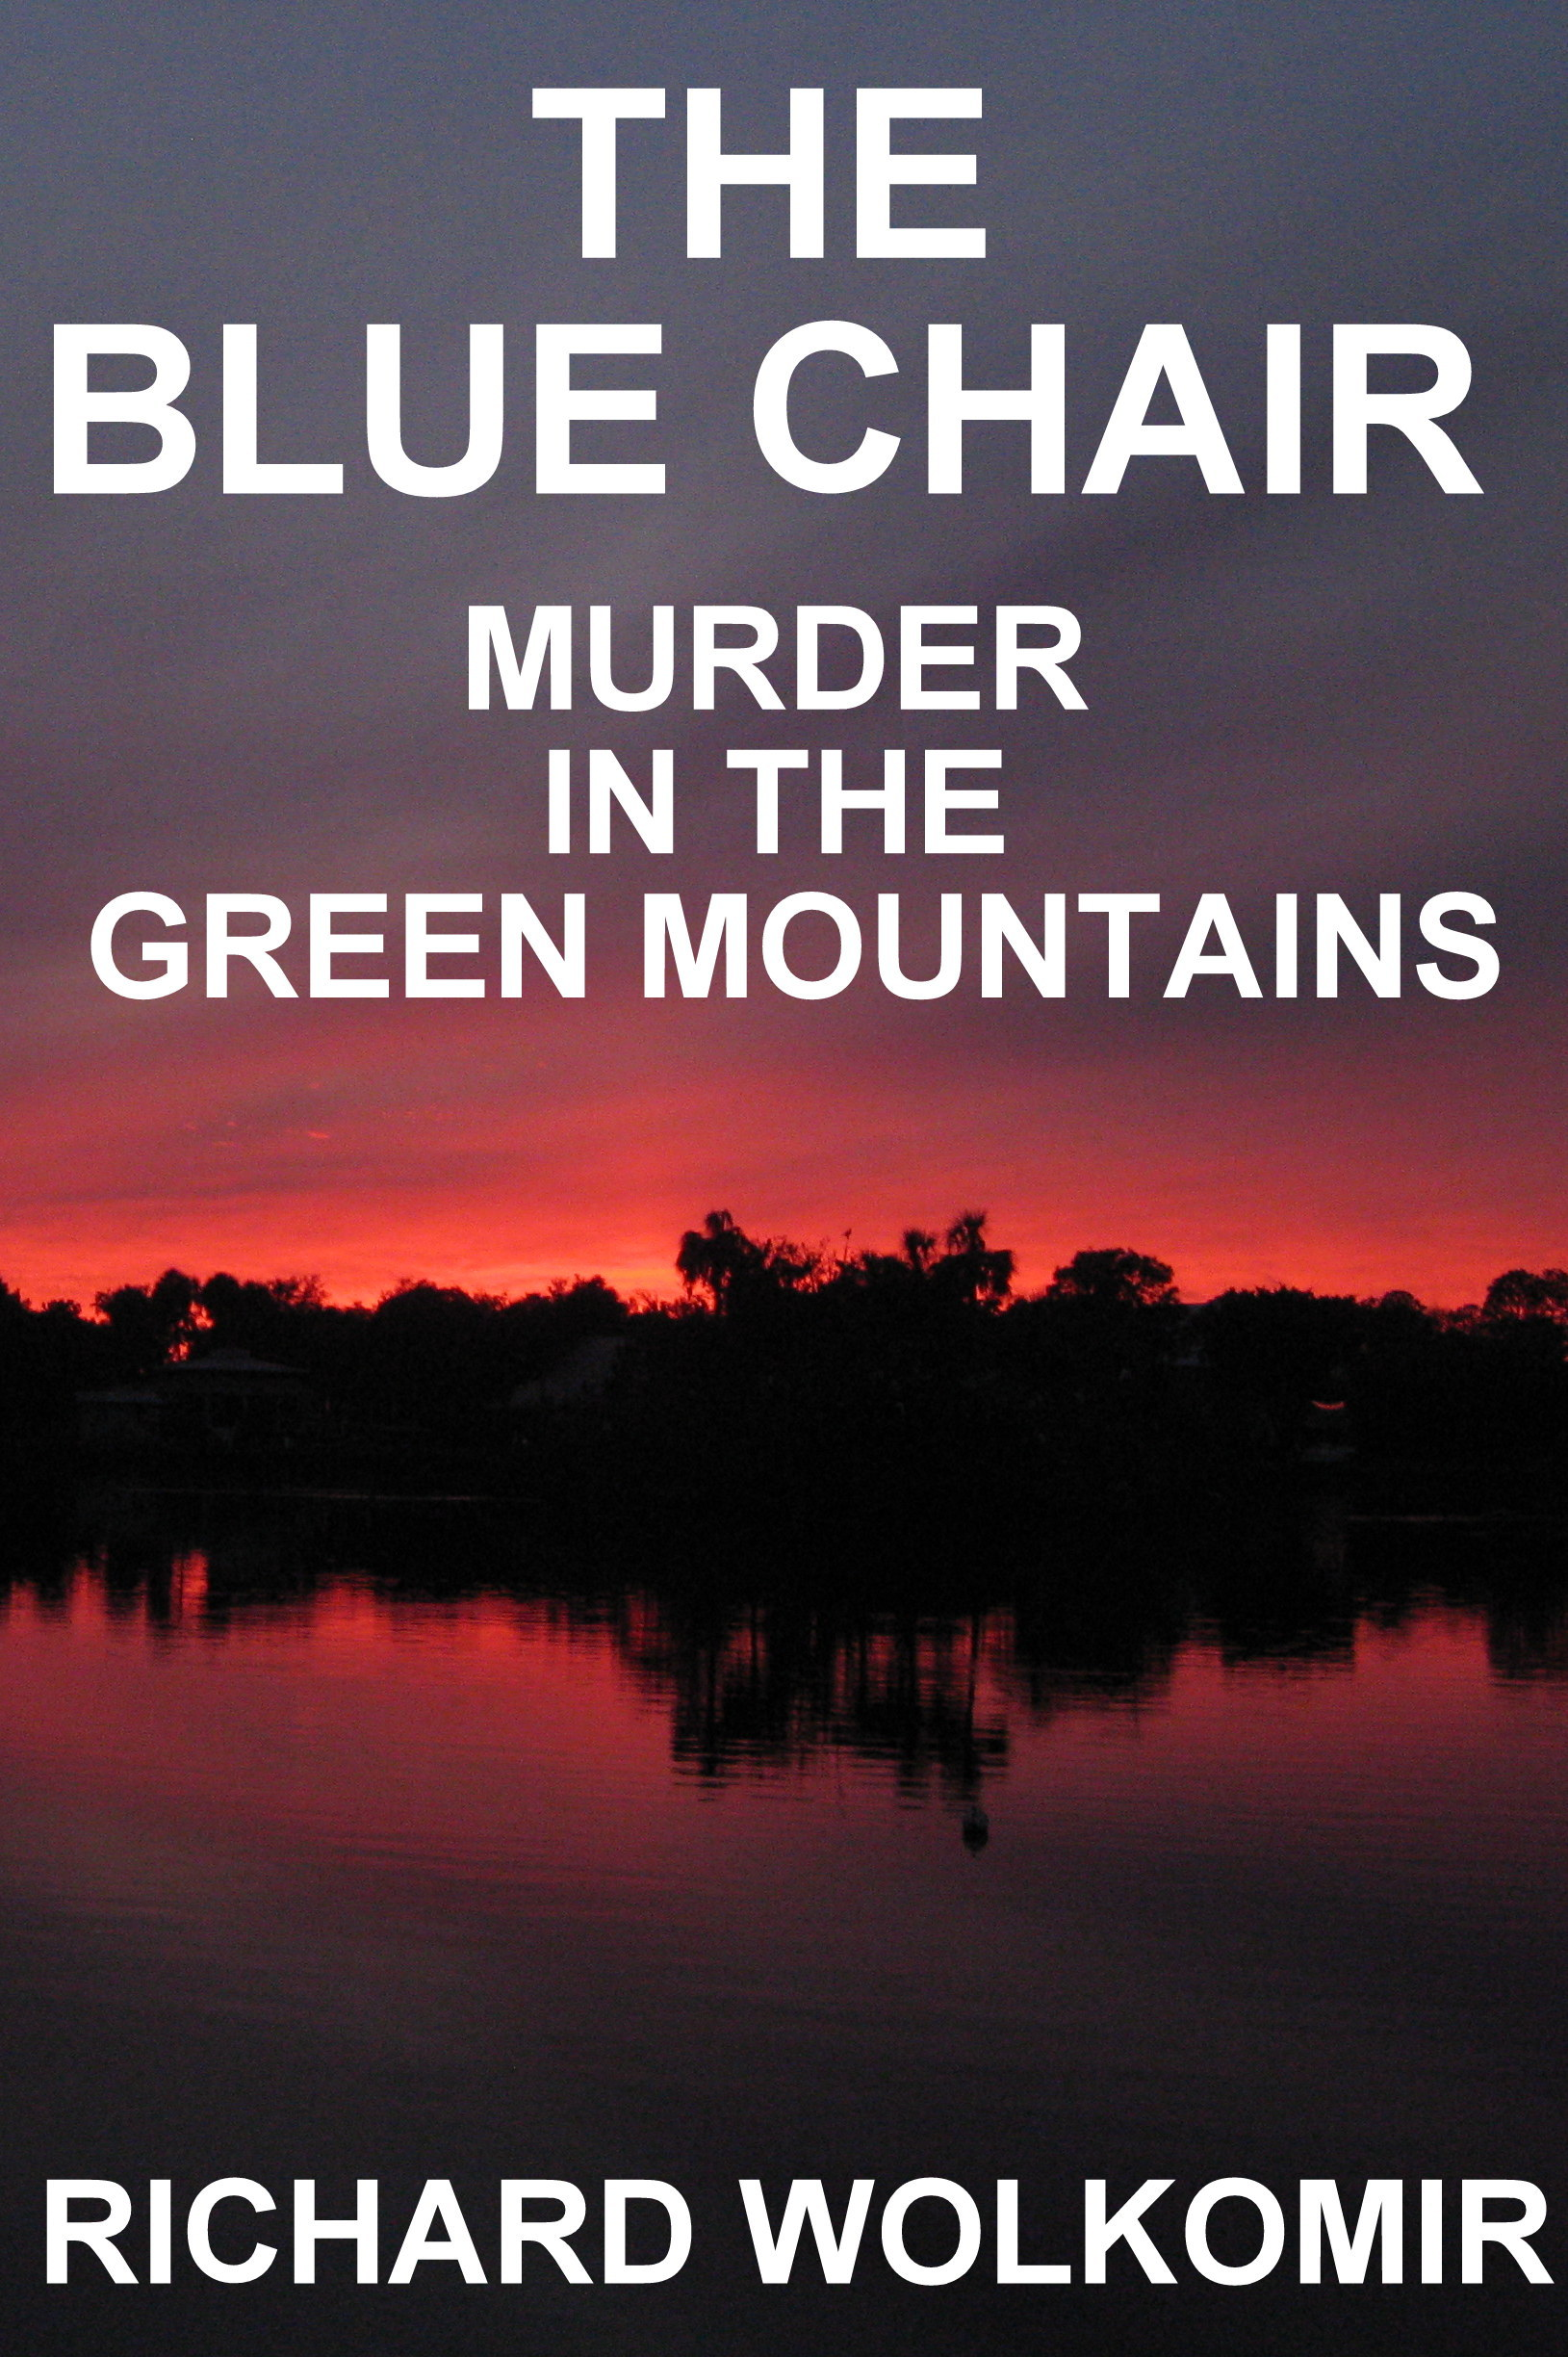 The Blue Chair: Murder In The Green Mountains